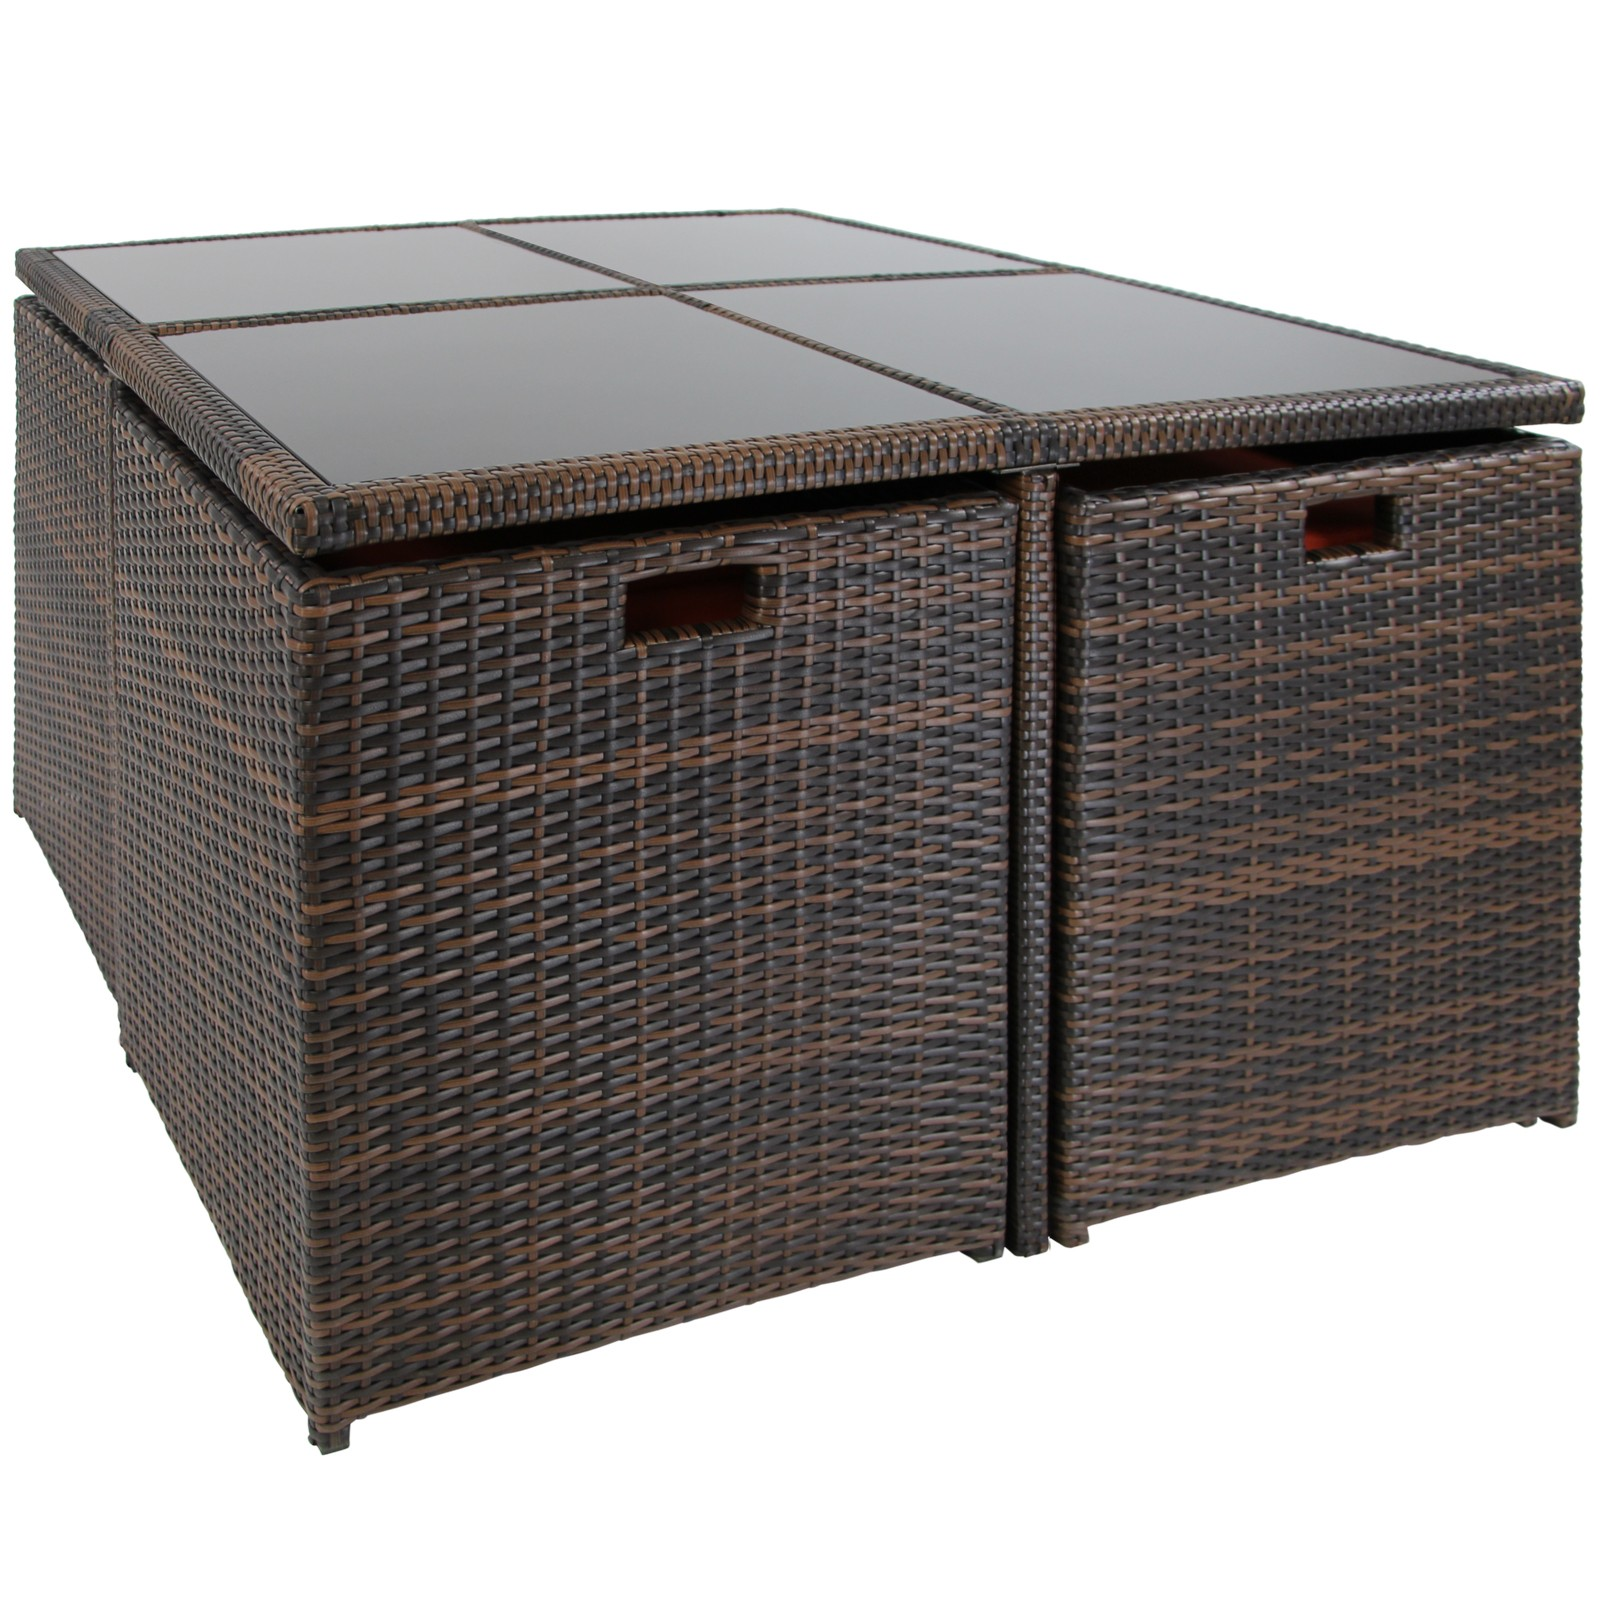 17 teilige polyrattan rattan sitzgruppe essgruppe. Black Bedroom Furniture Sets. Home Design Ideas